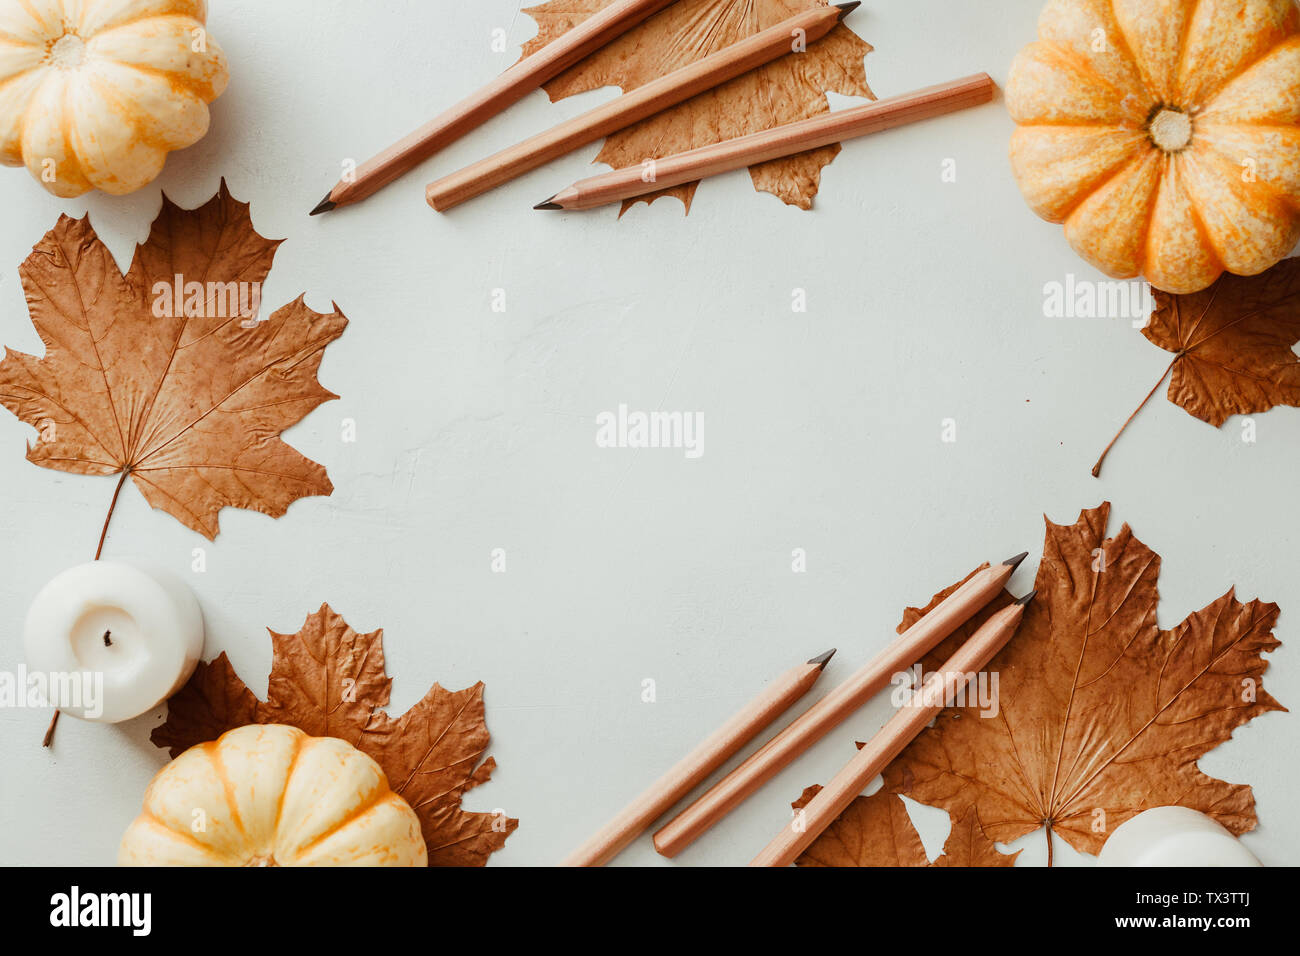 Autumn Flat Lay With Small Pumpkins Fall Maple Leaves And Wooden